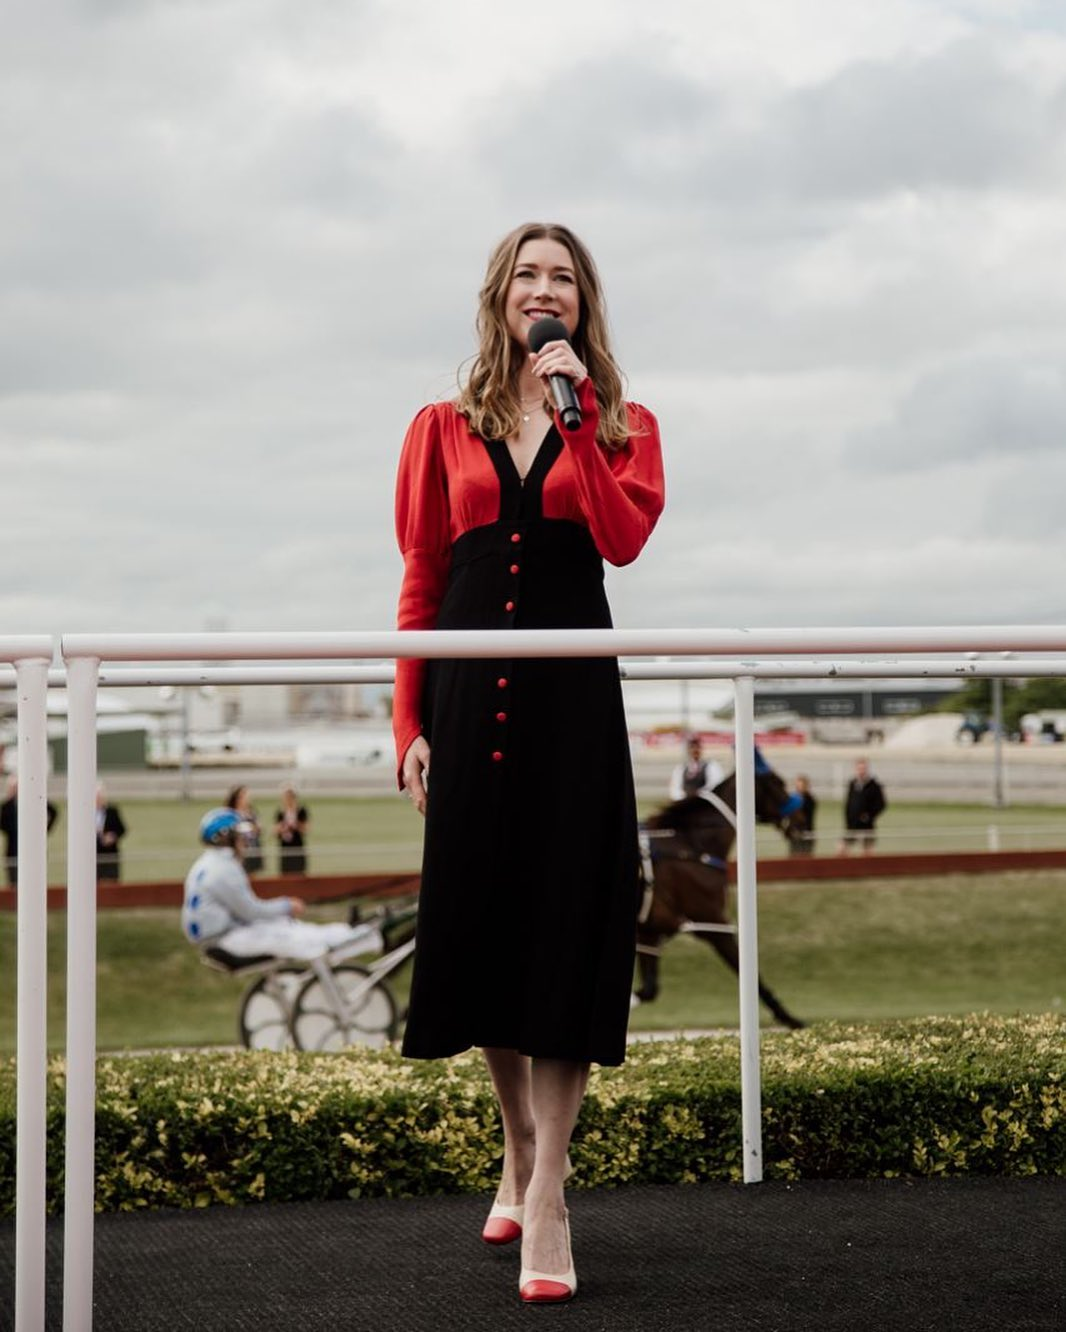 Hayley Westenra at the NZ Trotting Cup 2020